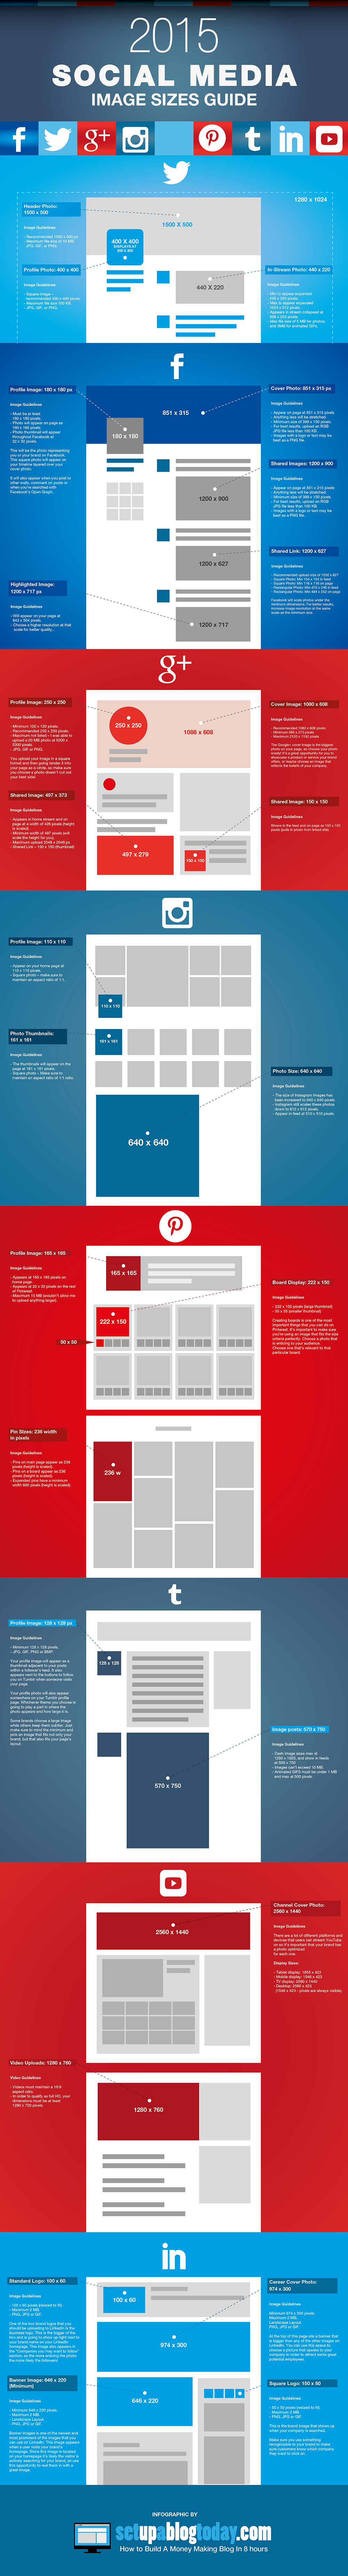 2015 social media image size cheat sheet